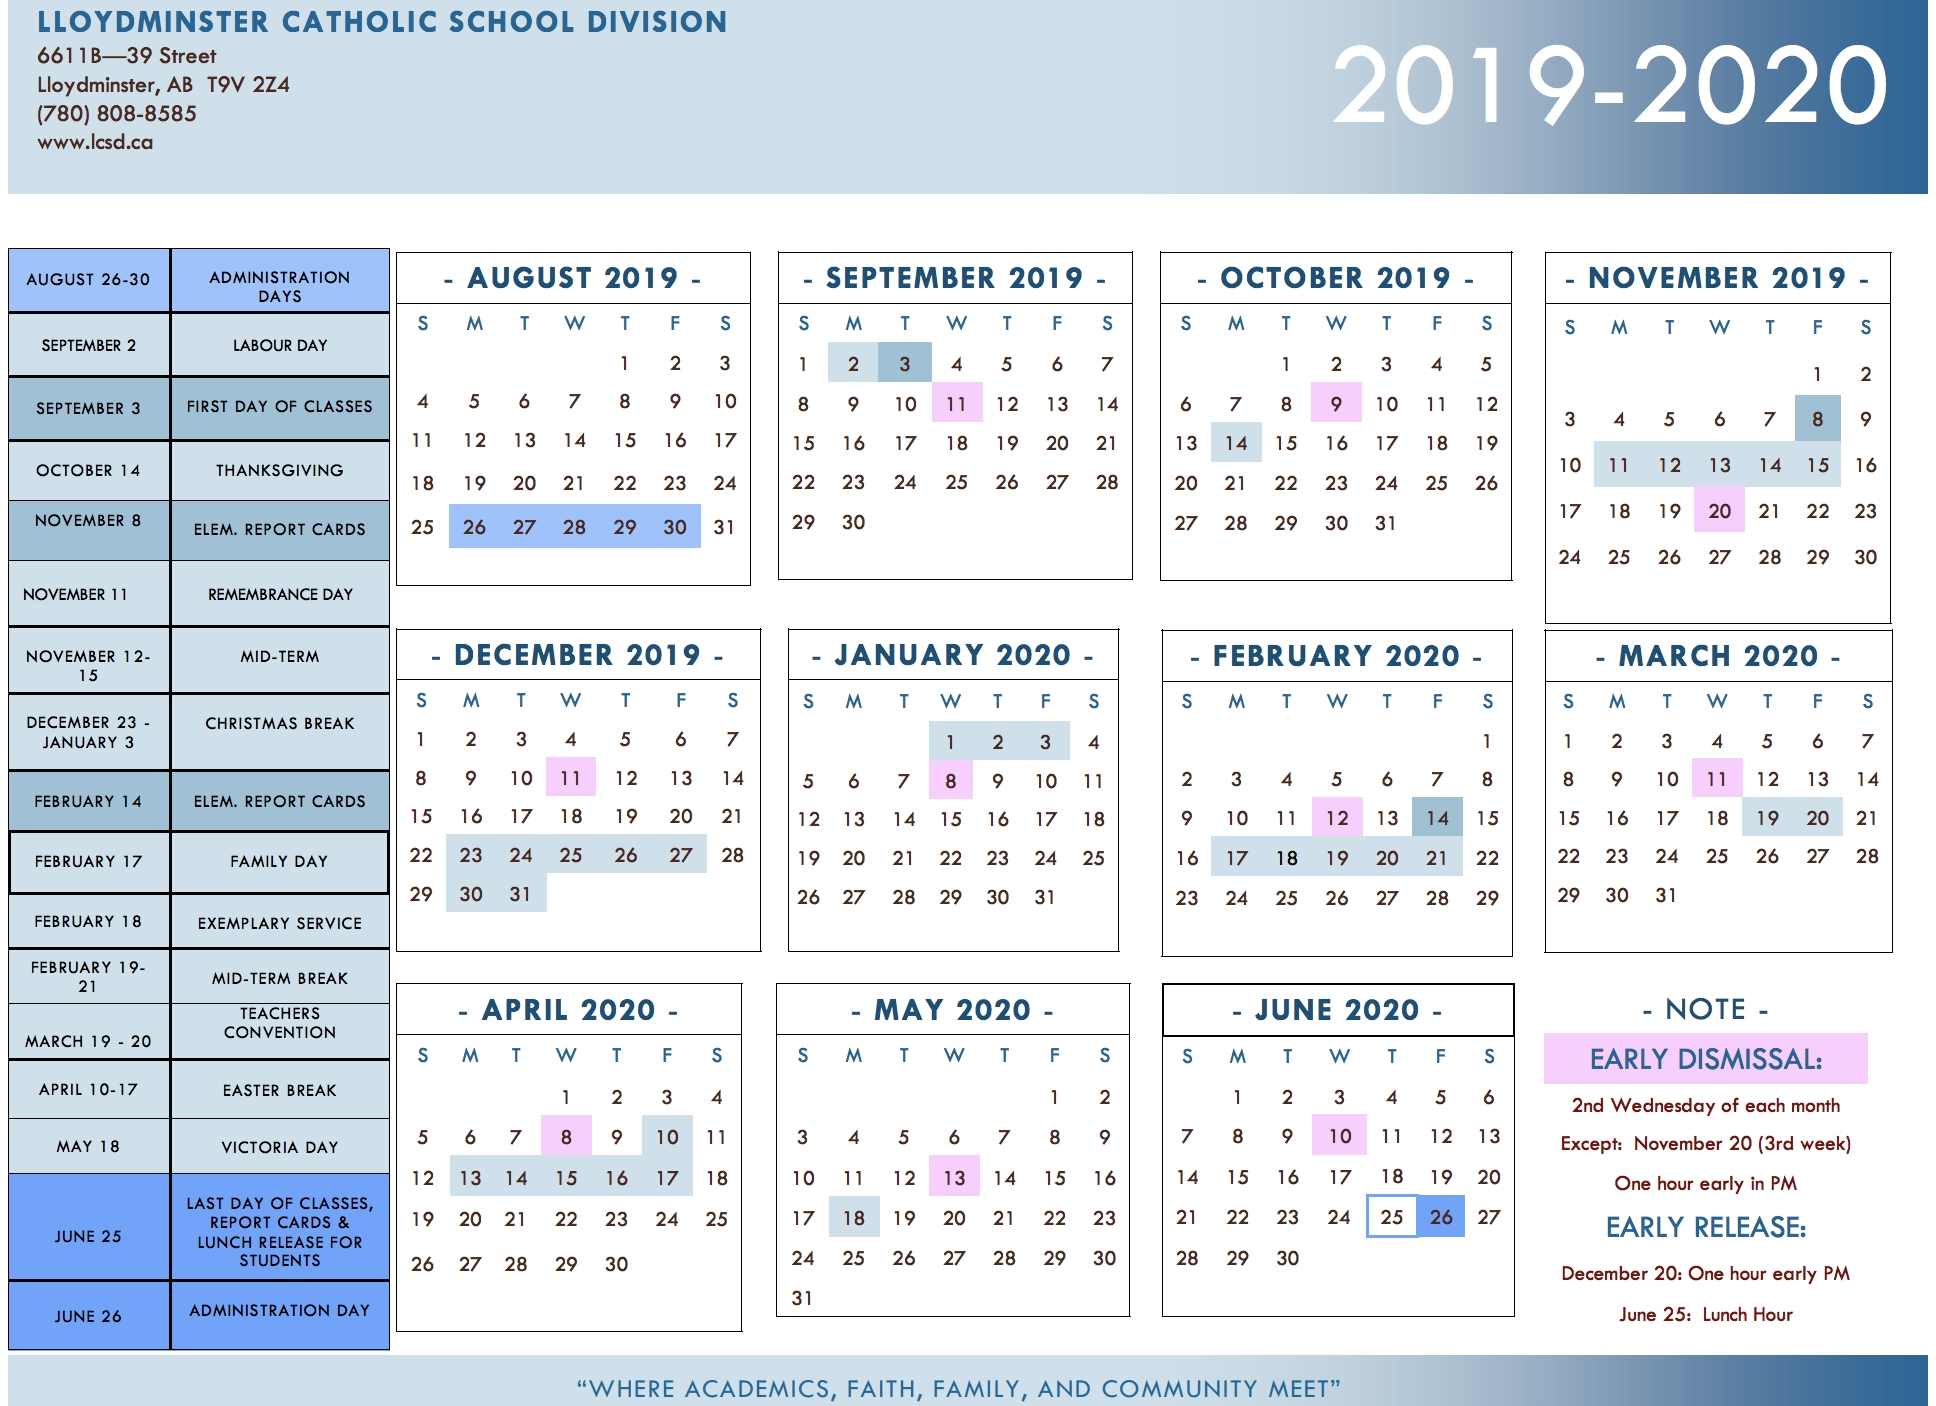 Division Calendar - Lloydminster Catholic School Division for 2020 Liturgical Calendar With Dates